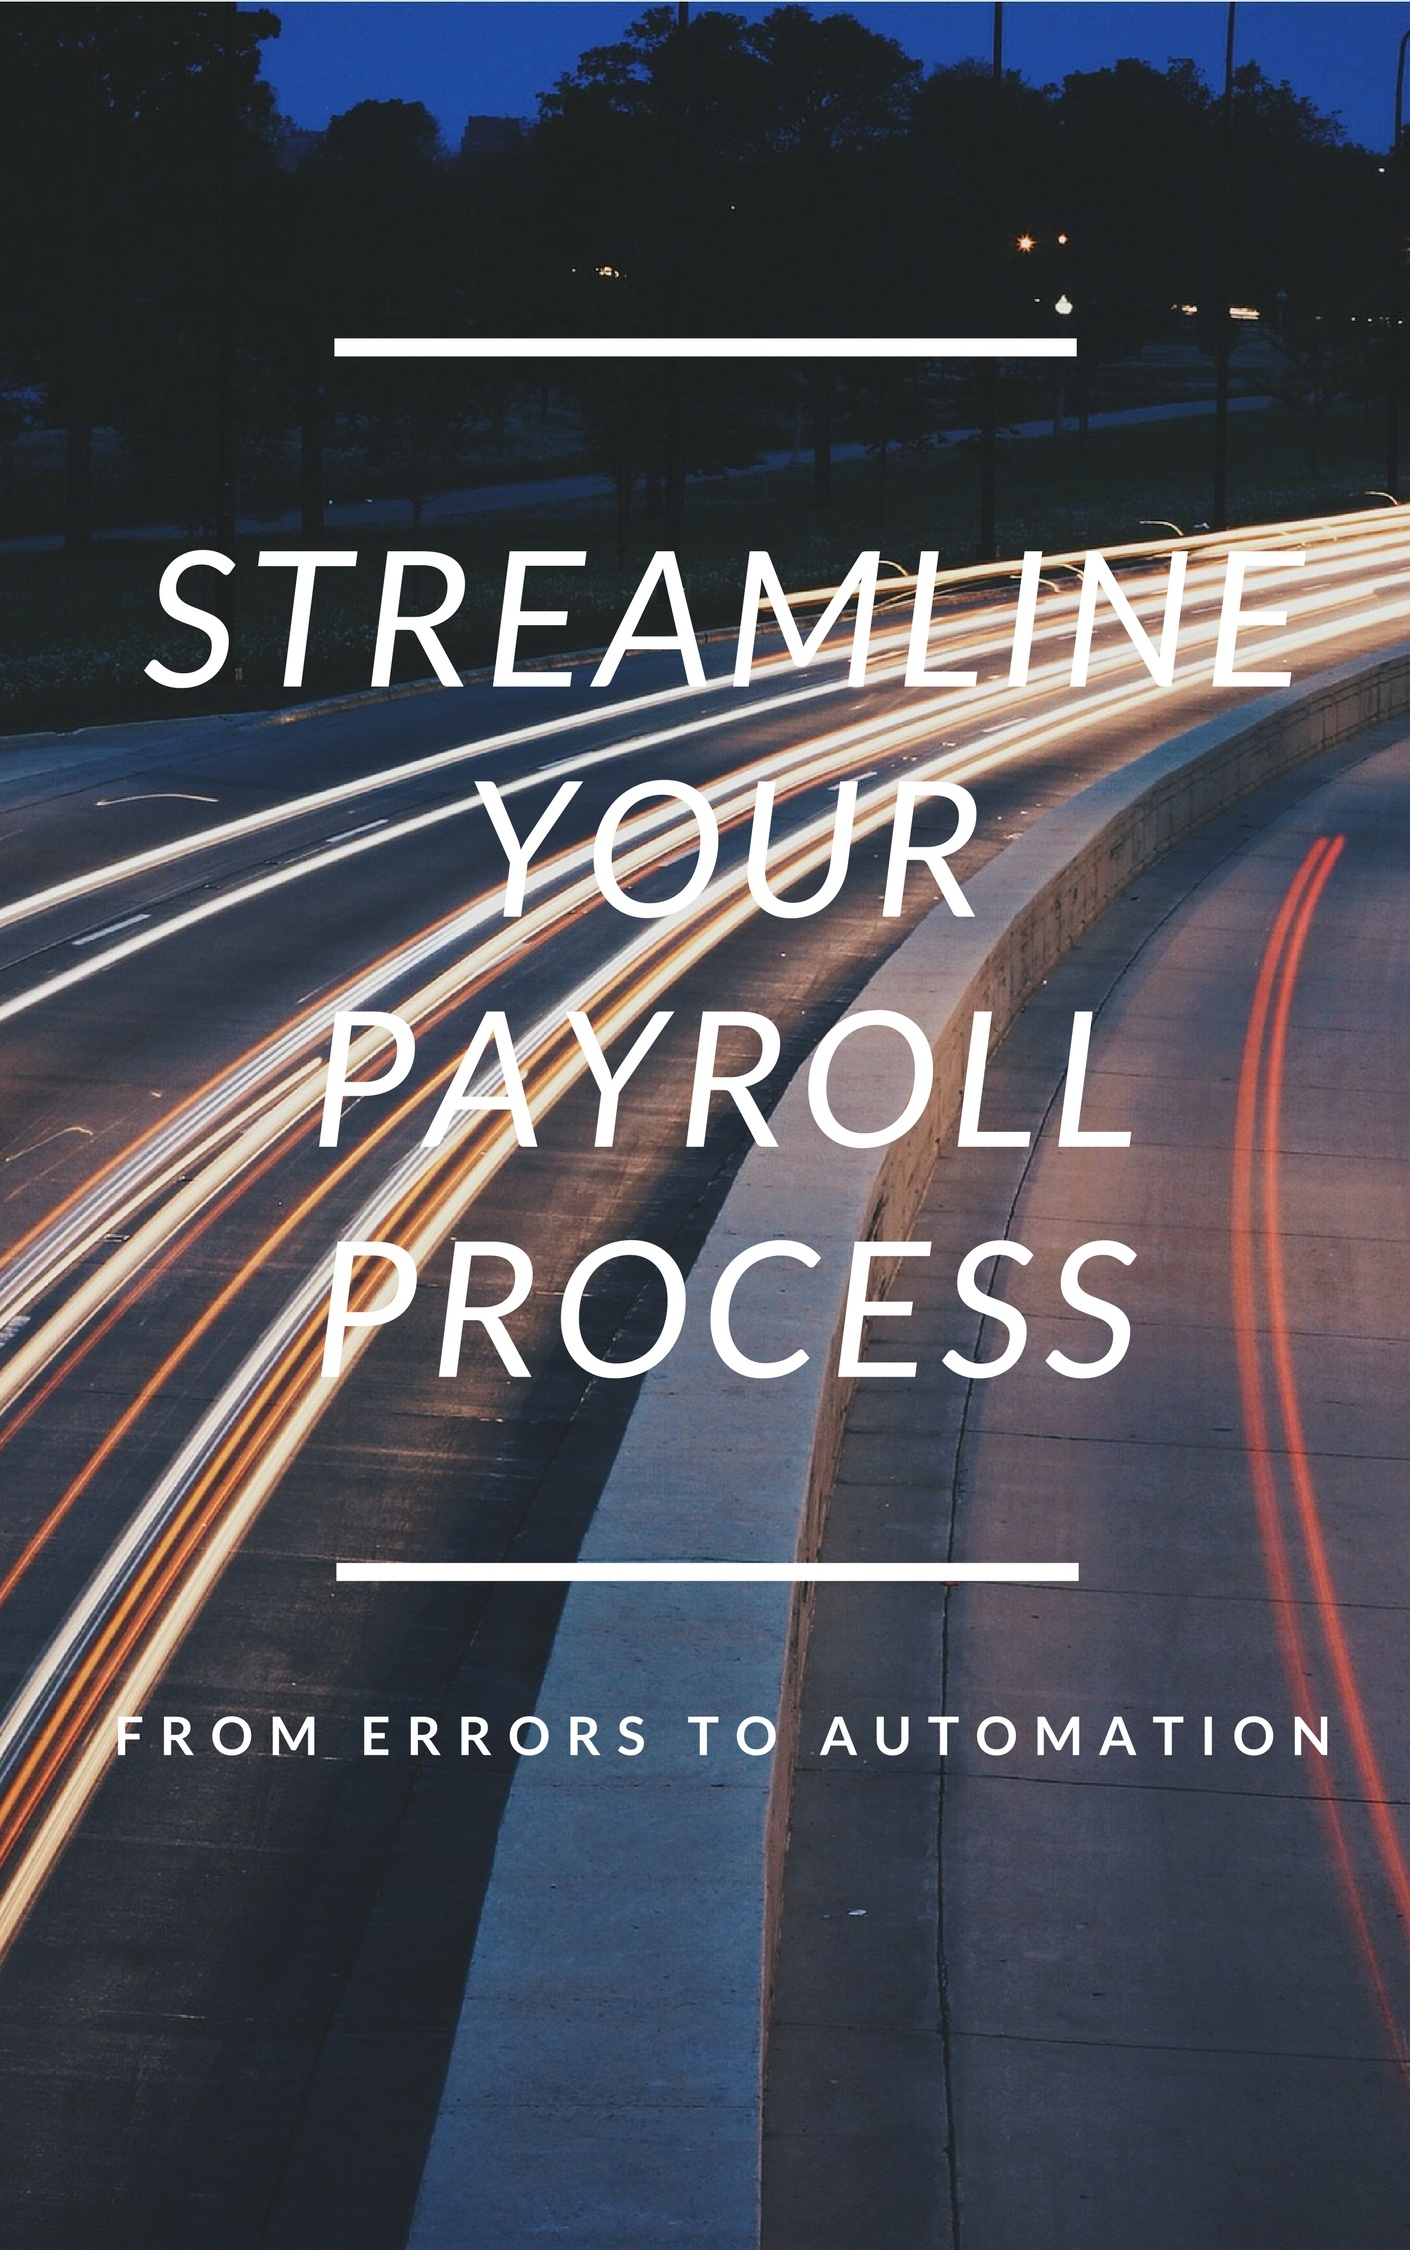 Streamline your payroll process: from errors to automation